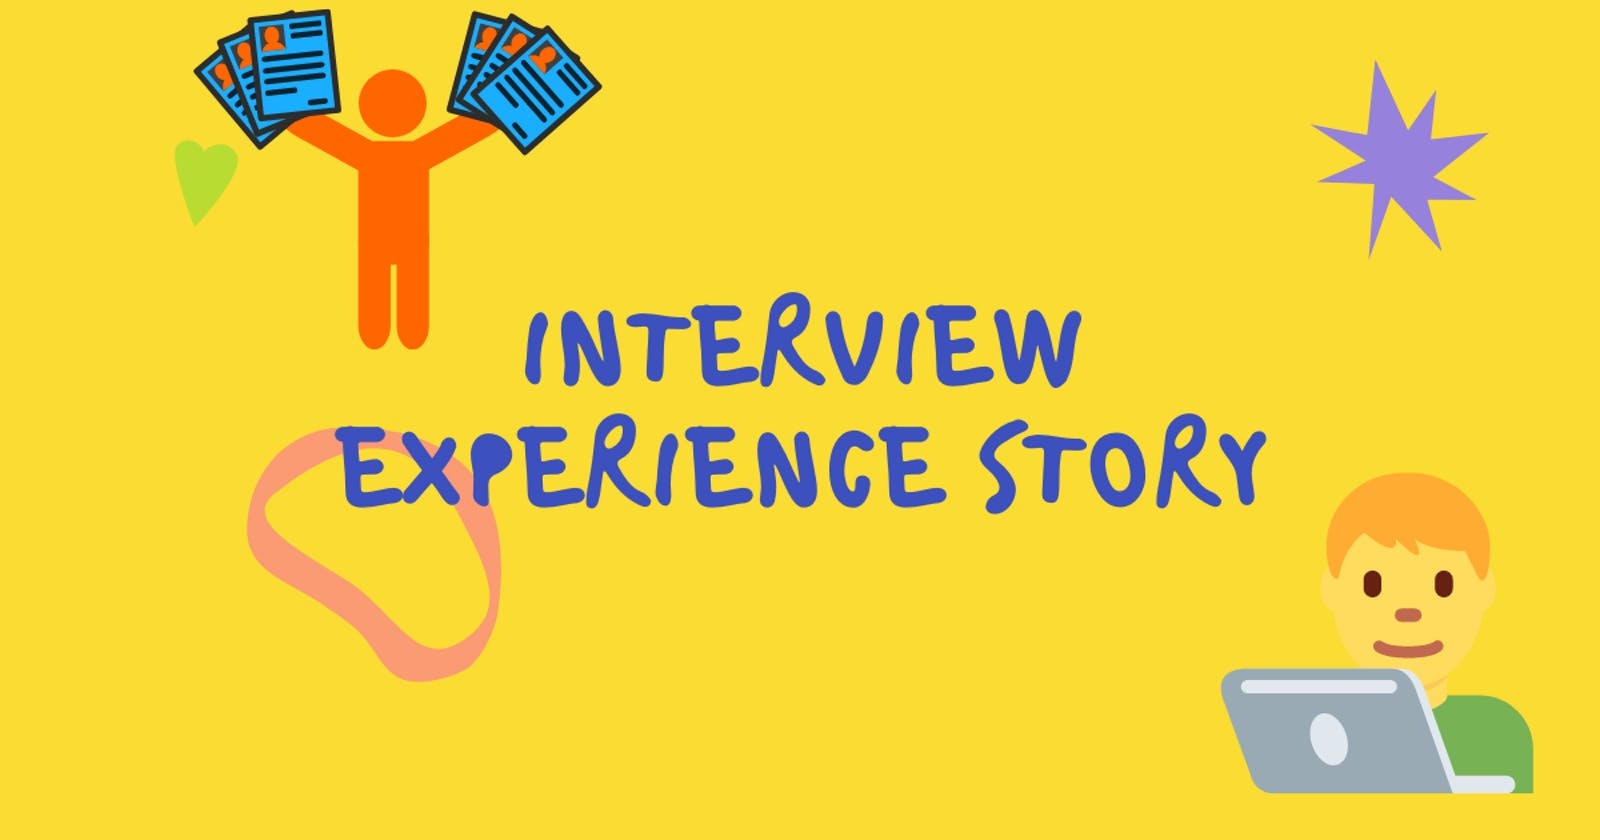 Experience about applying and attending interviews in last six months